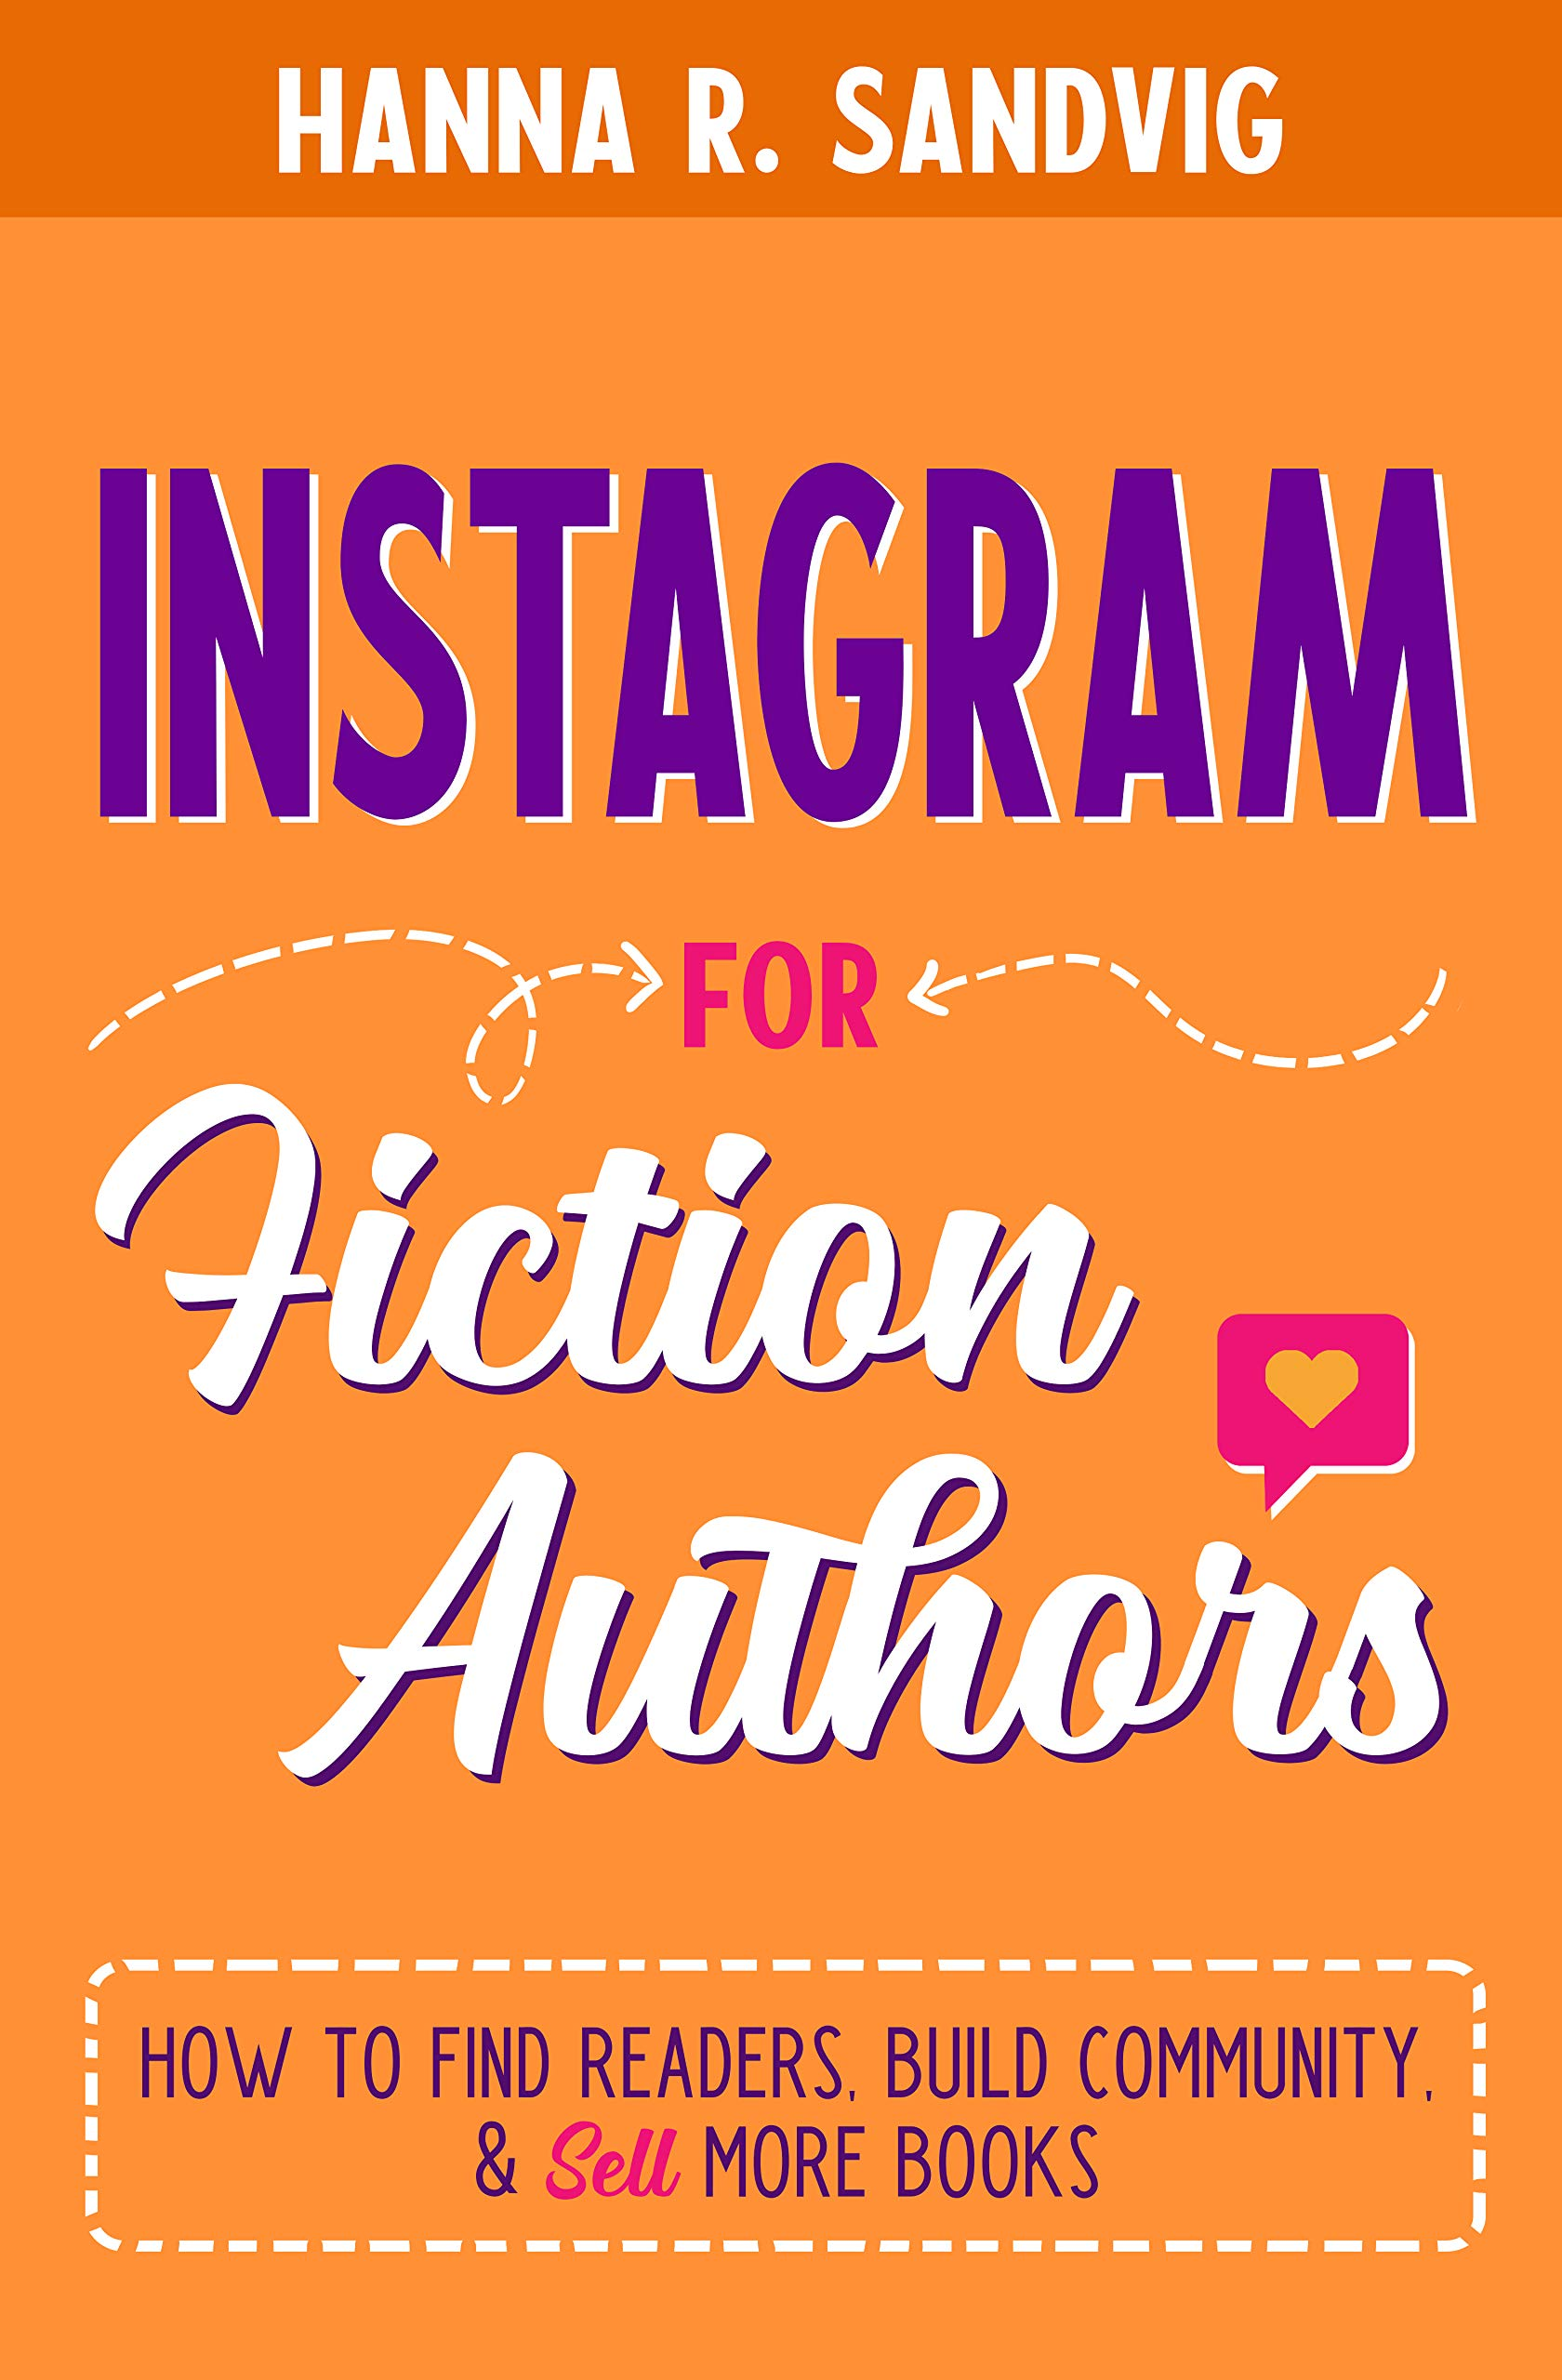 Instagram for Fiction Authors: How to Find Readers, Build Community, and Sell More Books